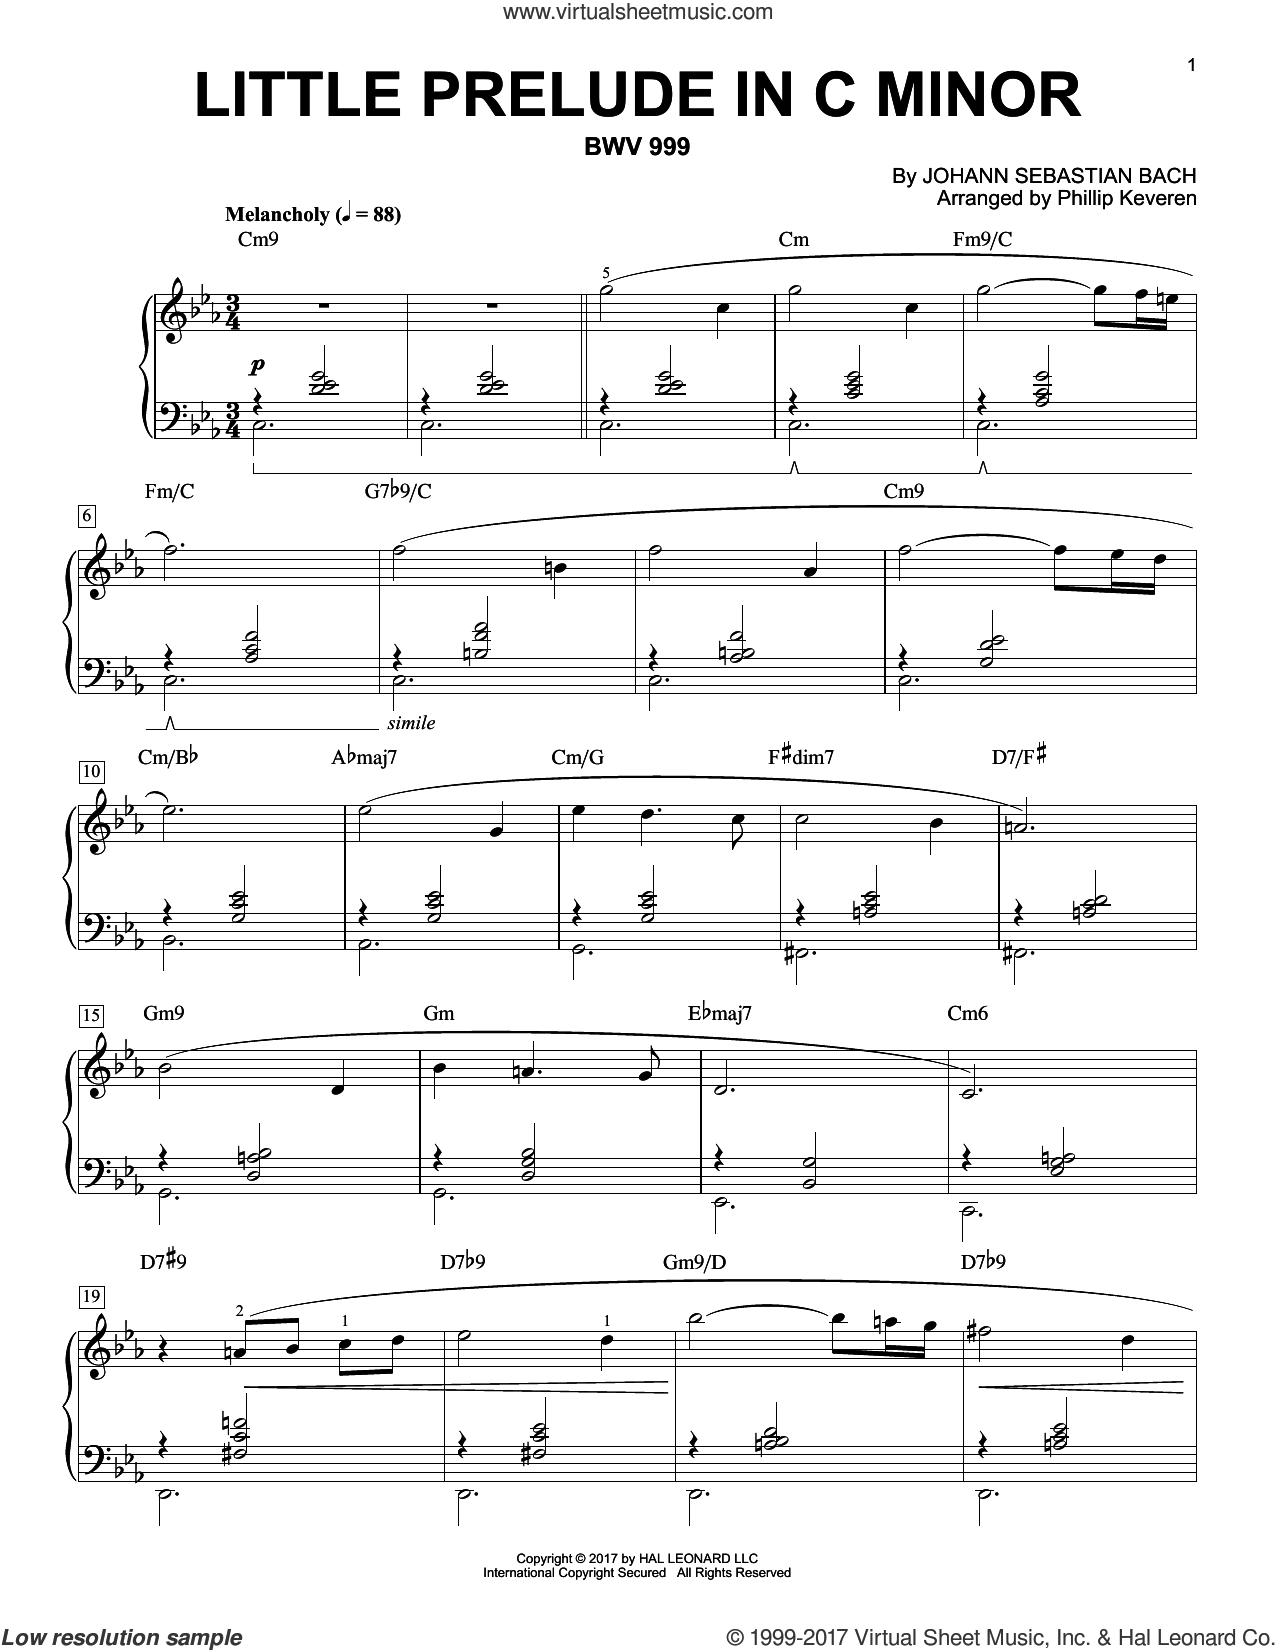 Little Prelude in C Minor, BWV 999 [Jazz version] (arr. Phillip Keveren) sheet music for piano solo by Johann Sebastian Bach and Phillip Keveren, classical score, intermediate skill level